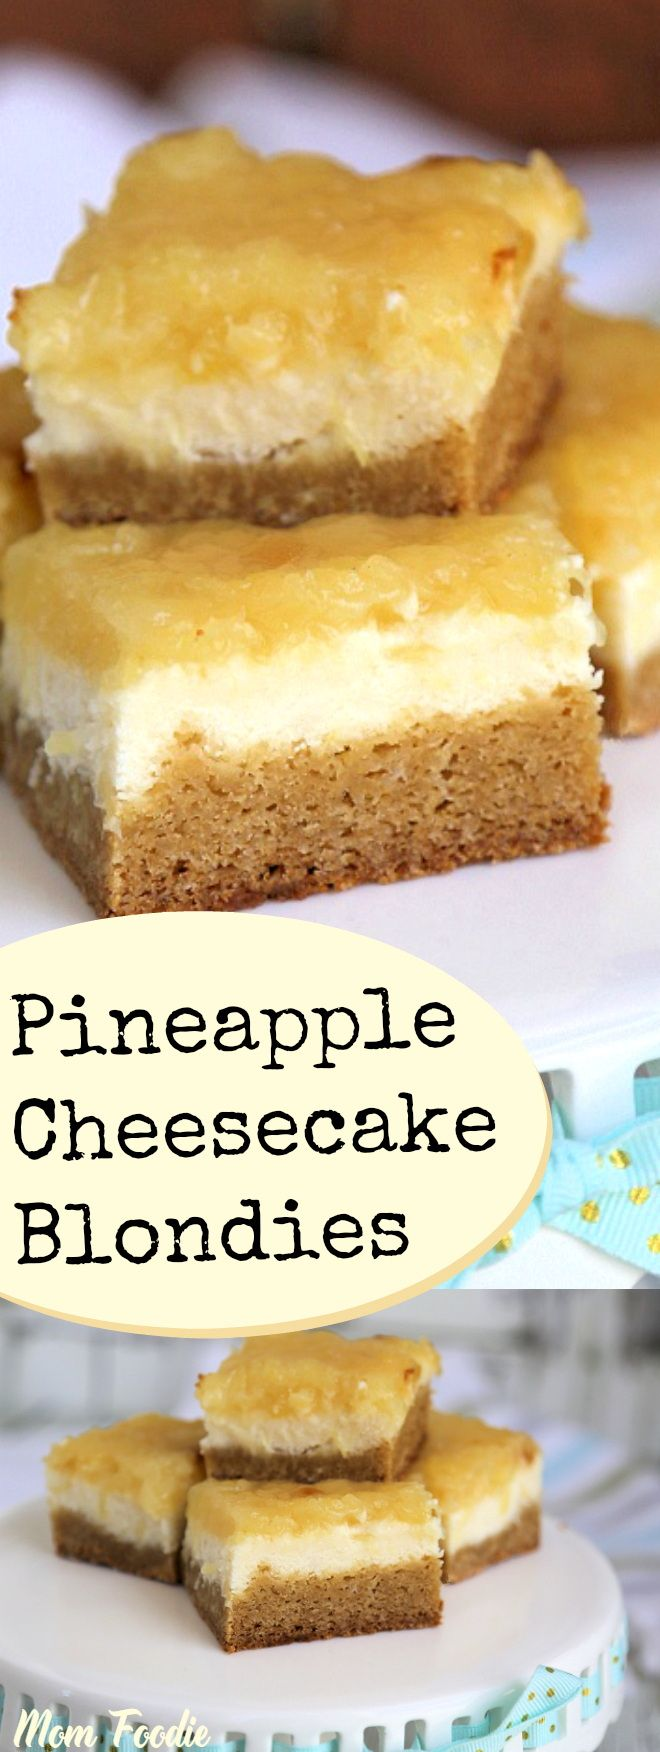 Pineapple Cheesecake Blondies